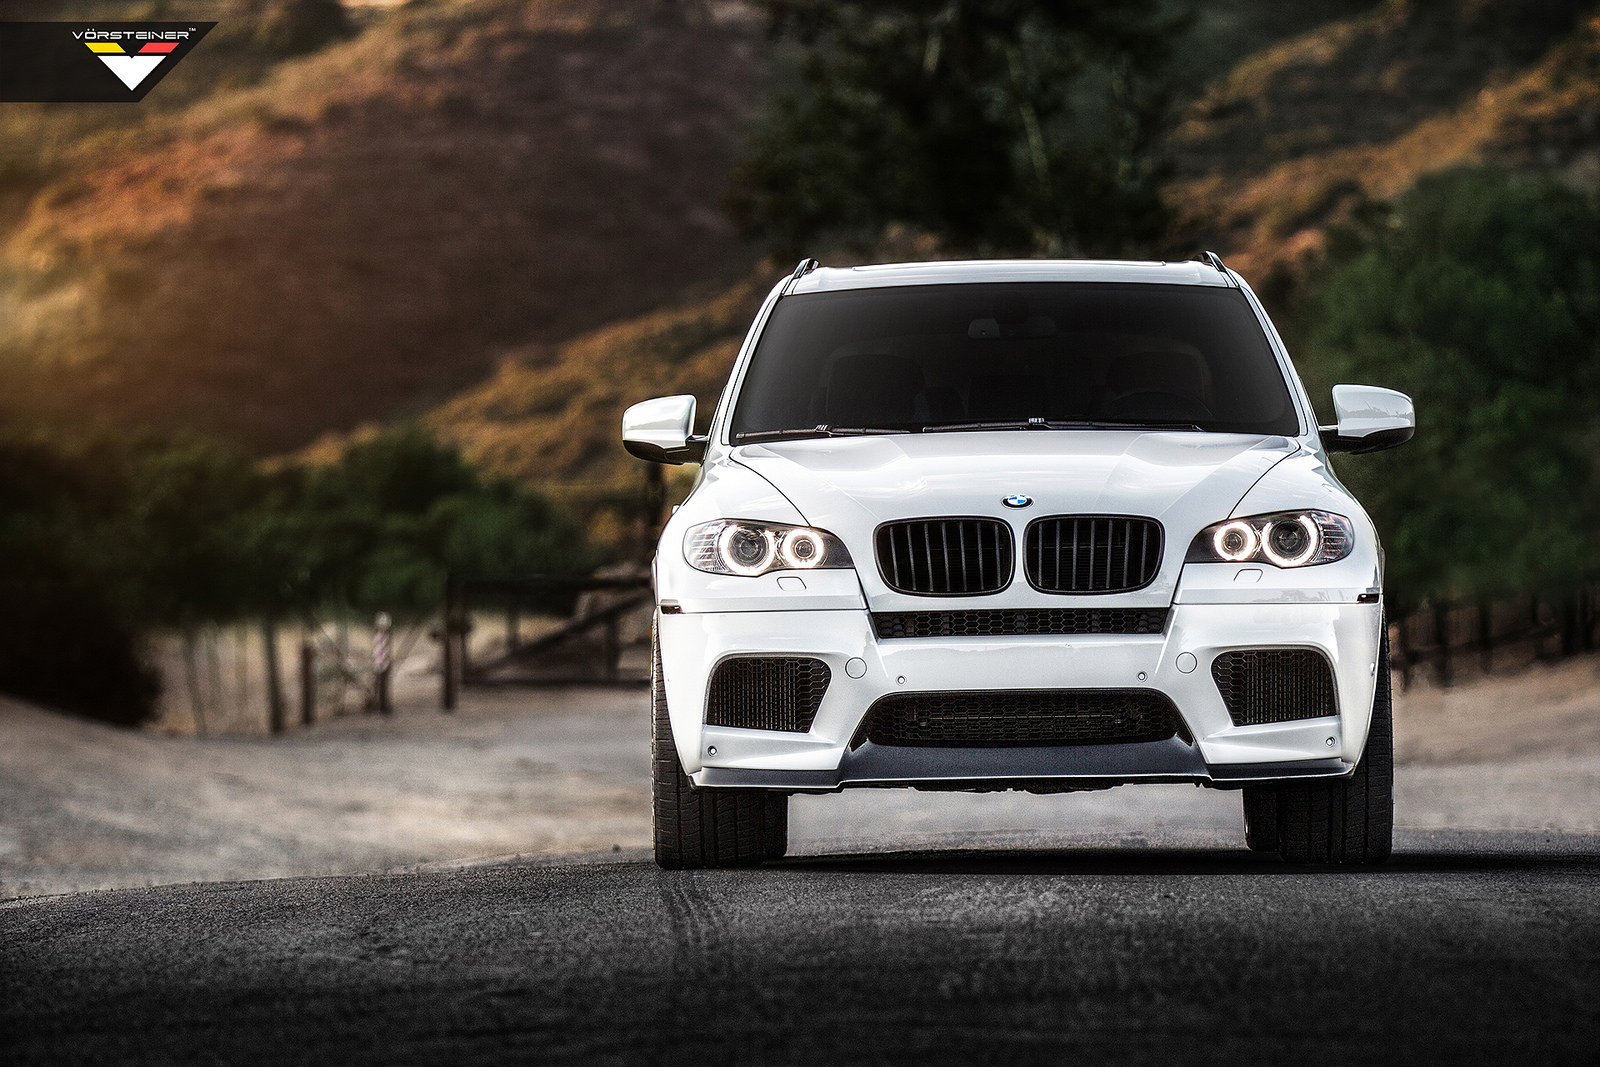 Vorsteiner BMW X5M Photoshoot 4